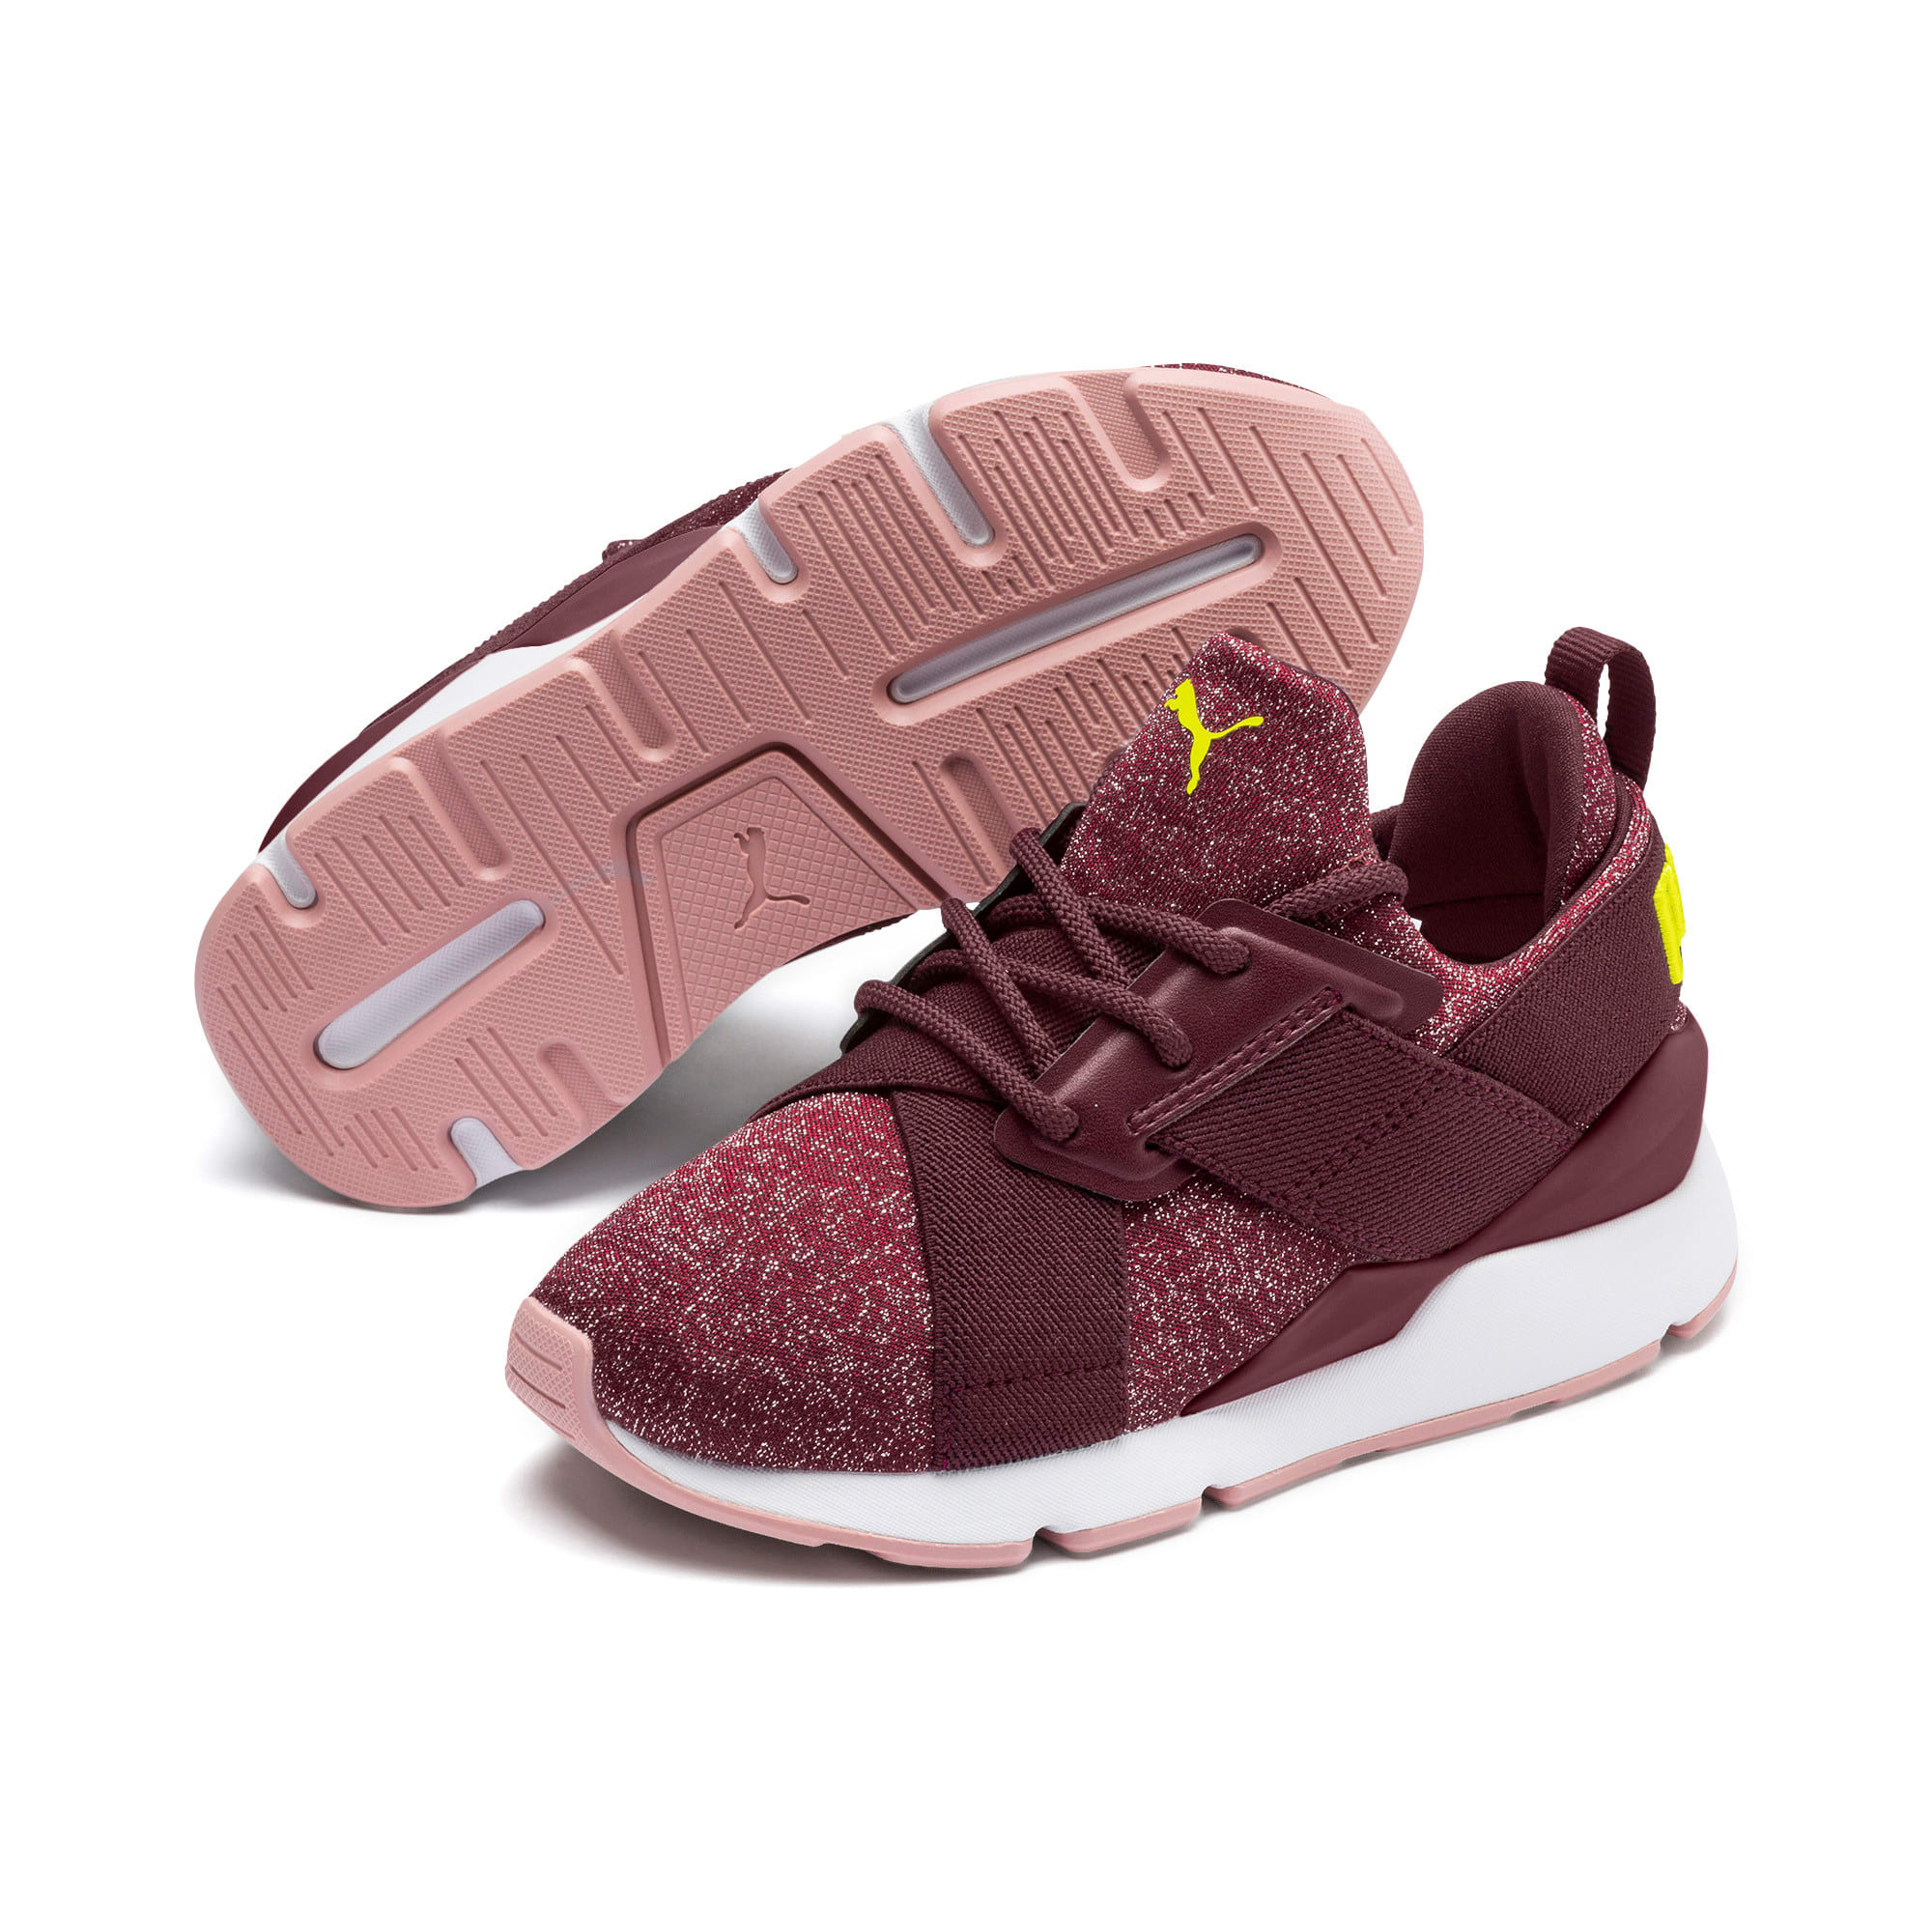 Miniatura 2 de Zapatos Muse Shift para niños pequeños, Vineyard Wine-Yellow Alert, mediano